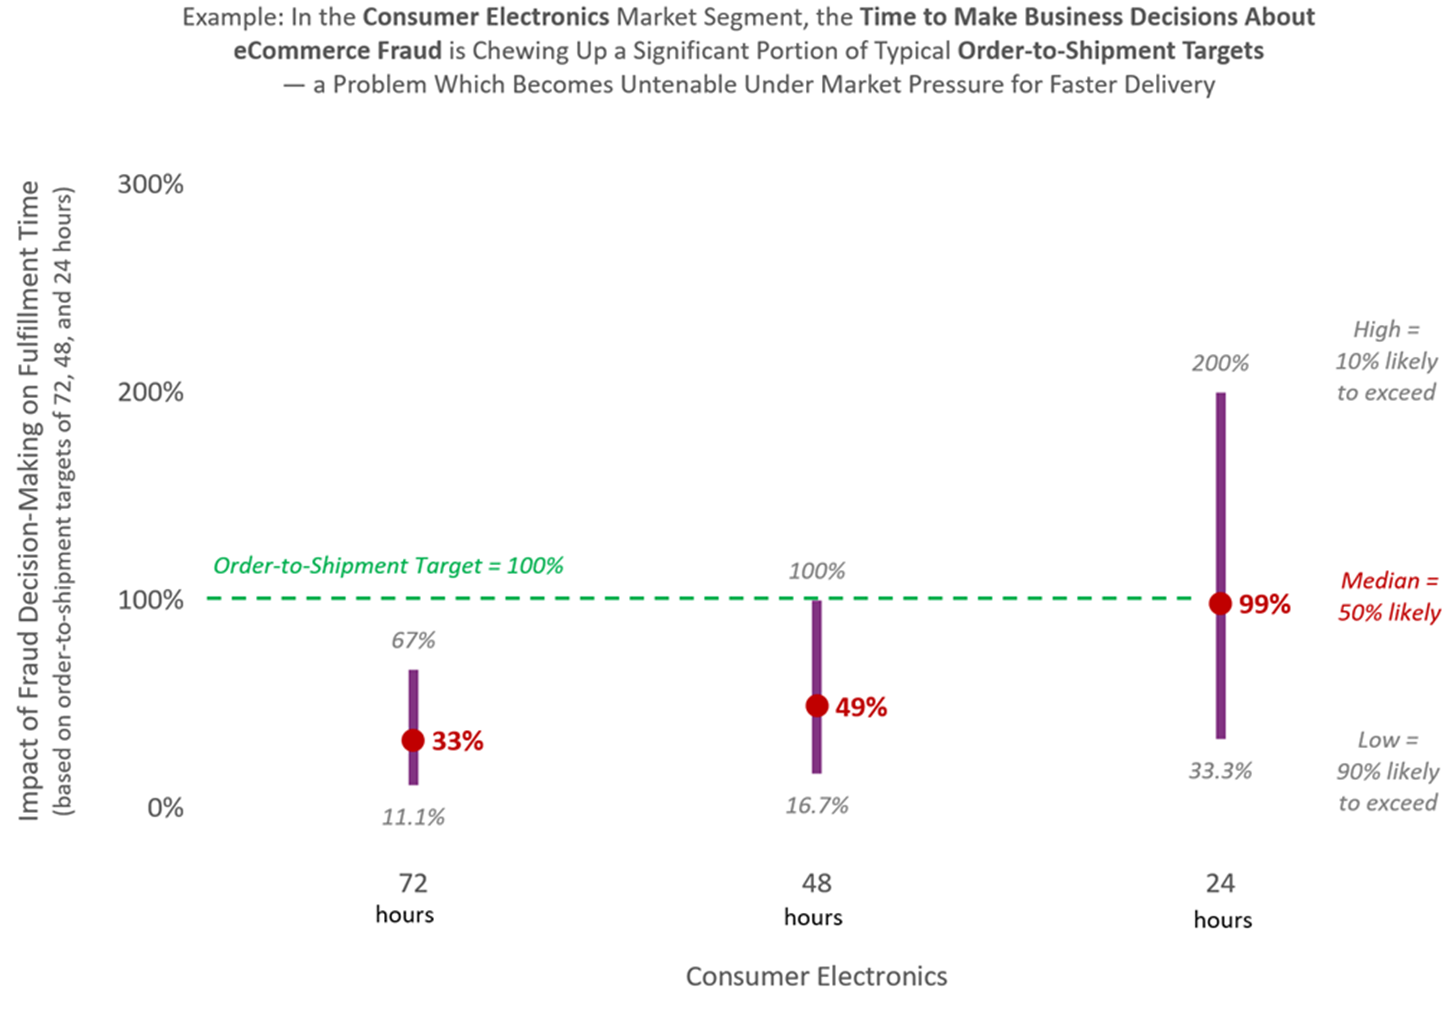 The Impact of the Time to Make Business Decisions About E-Commerce Fraud